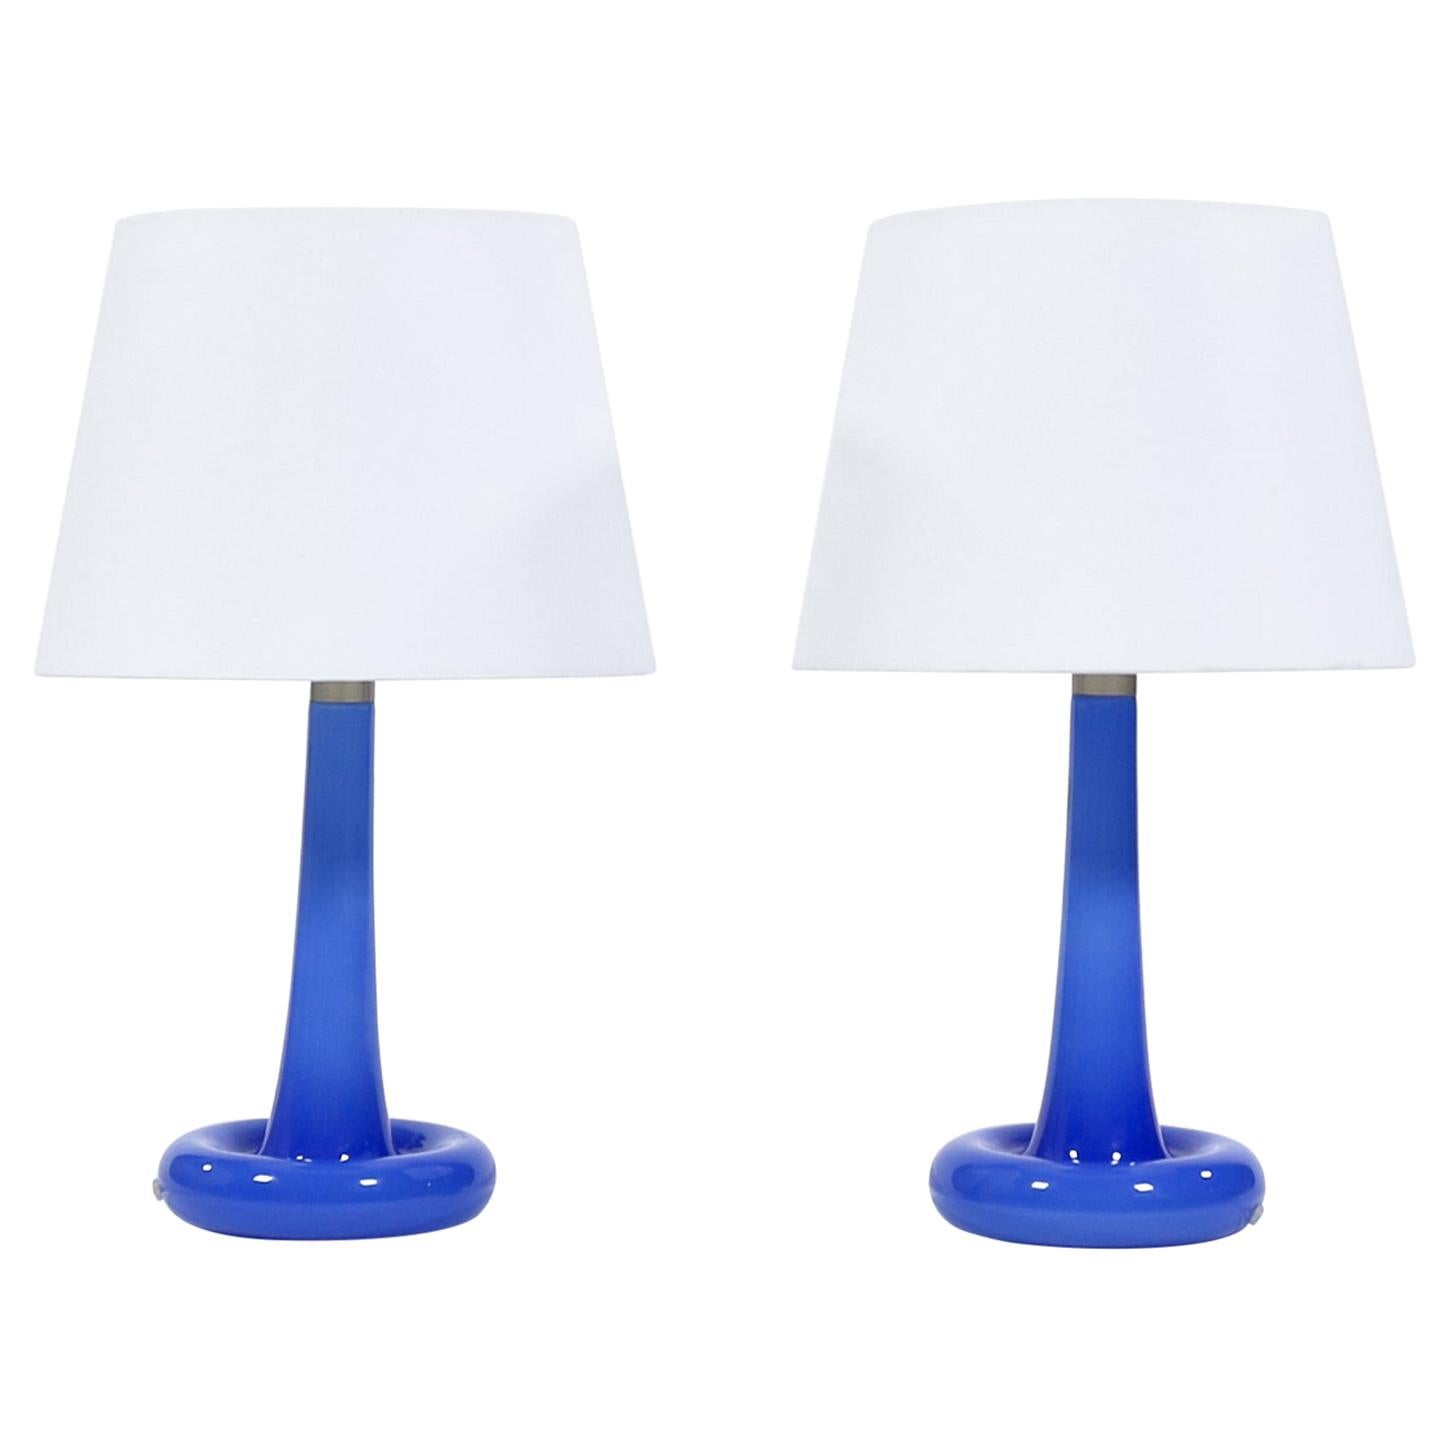 Pair of Danish Modern Blue Glass Table Lamps by Holmegaard Glassworks, 1975